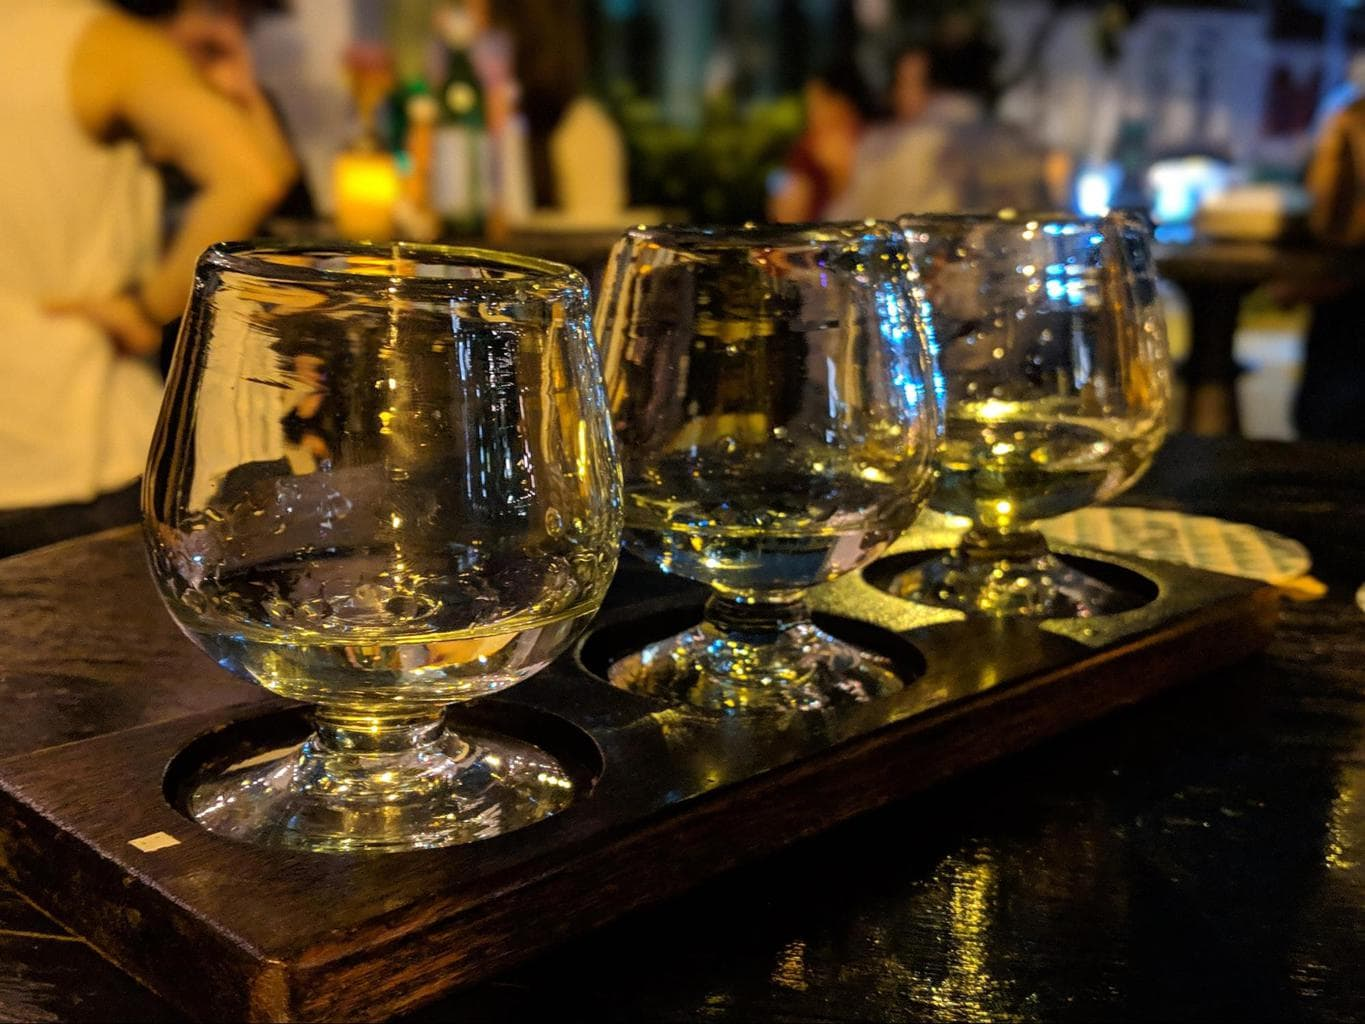 A flight of three mezcals to sample